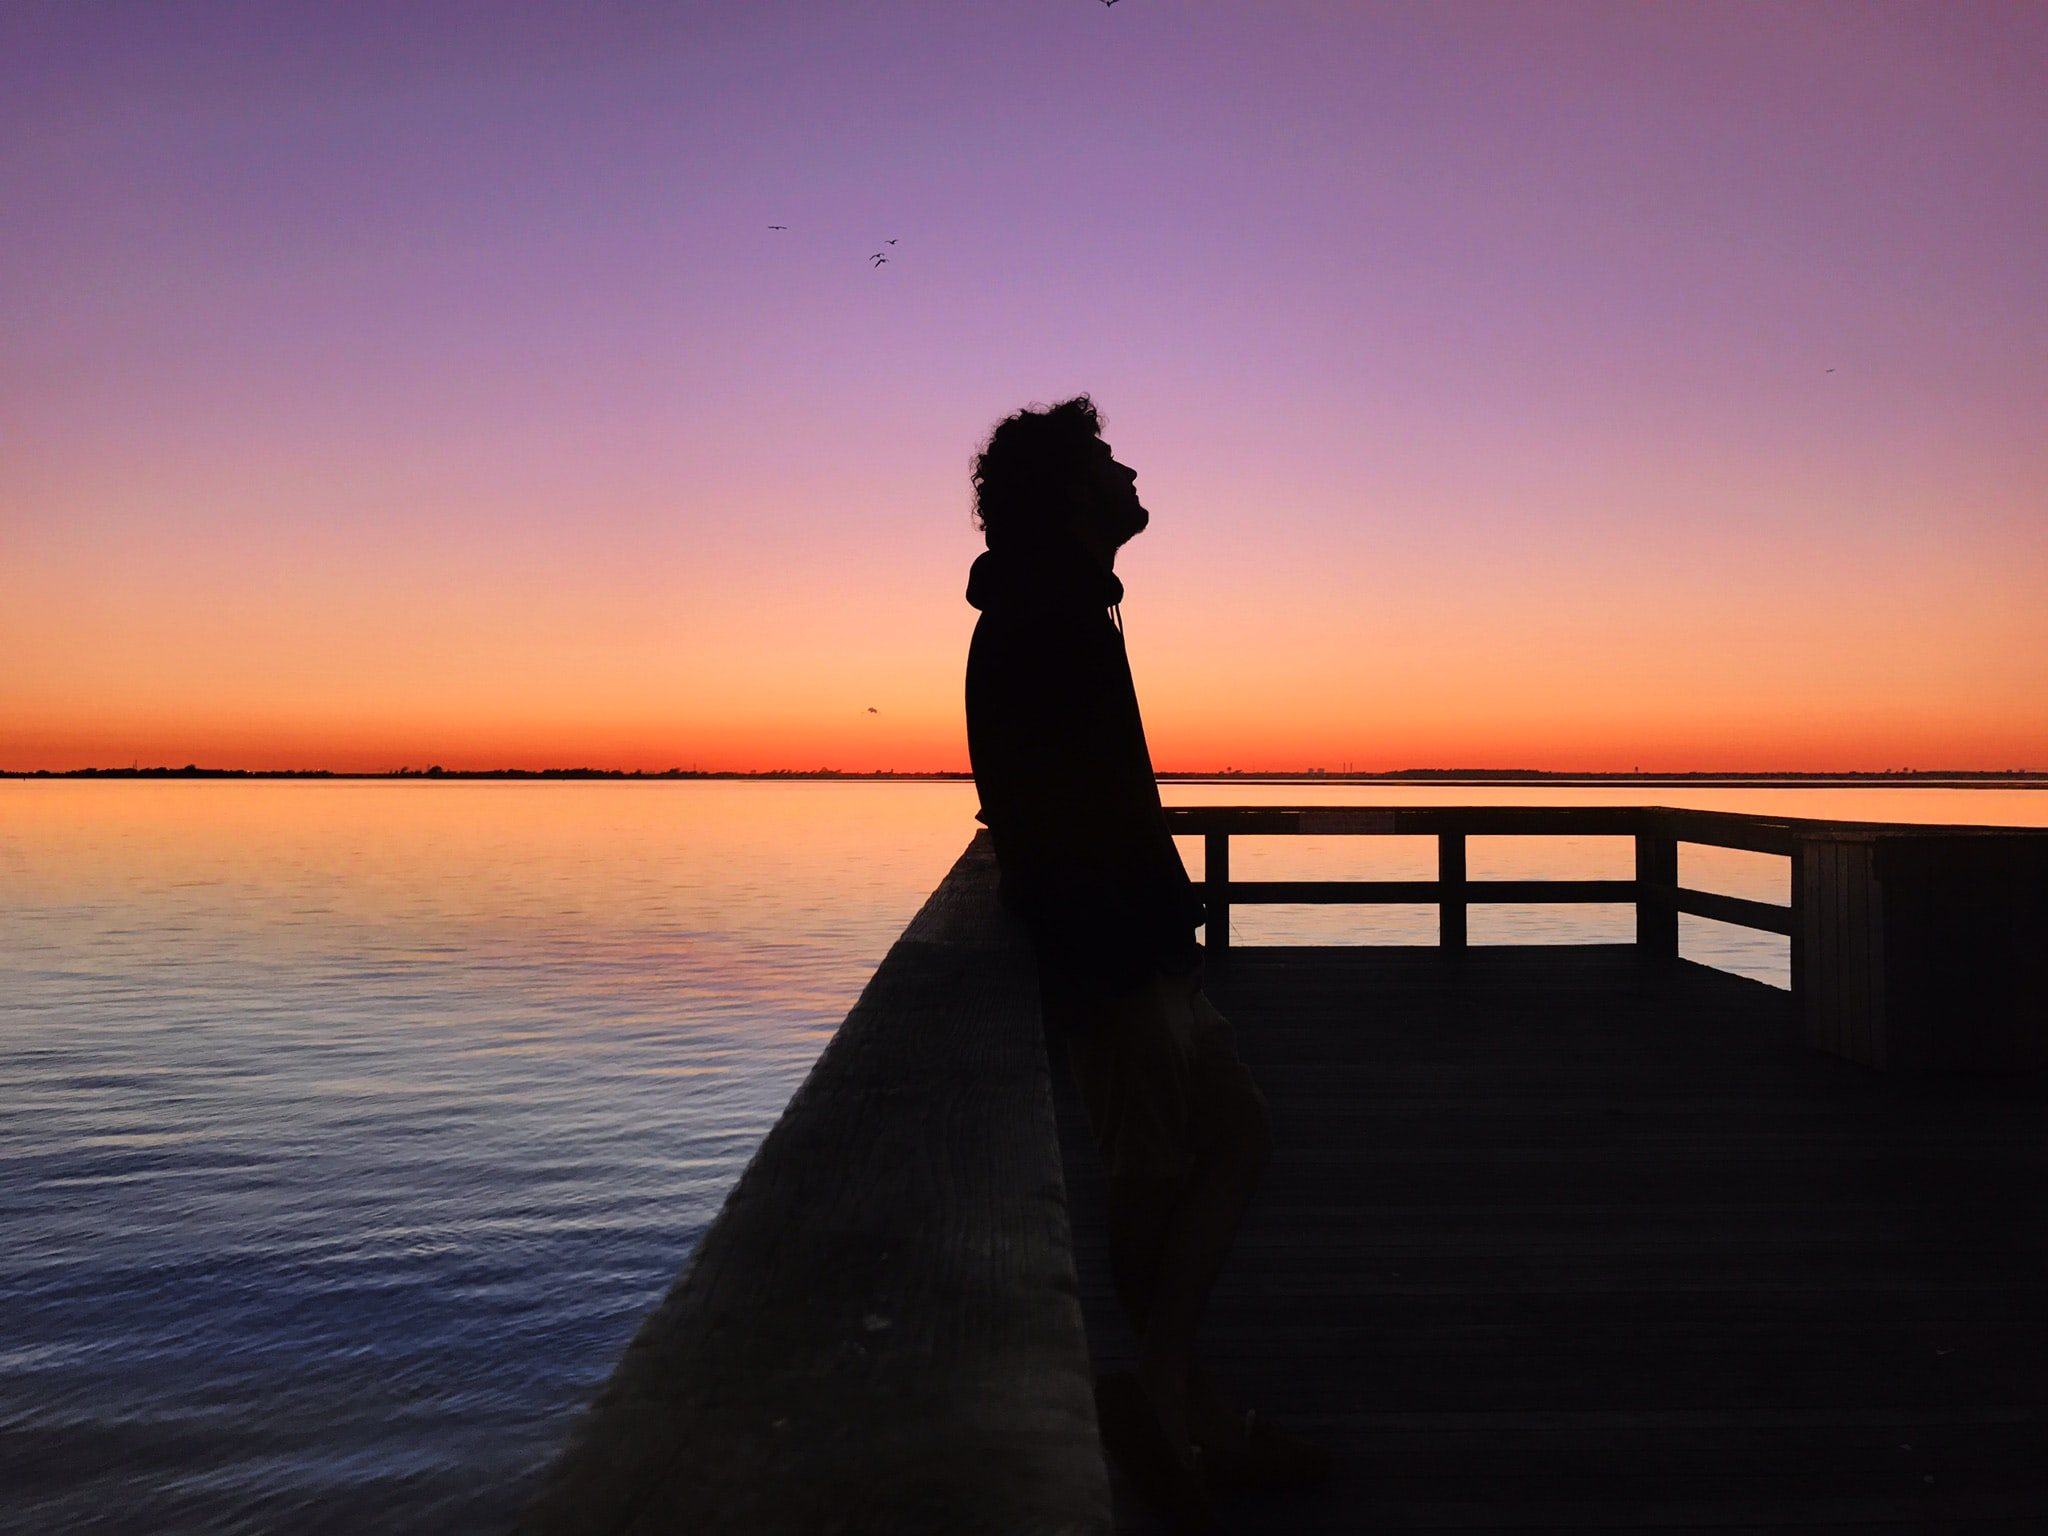 silhouette of a man during sunset